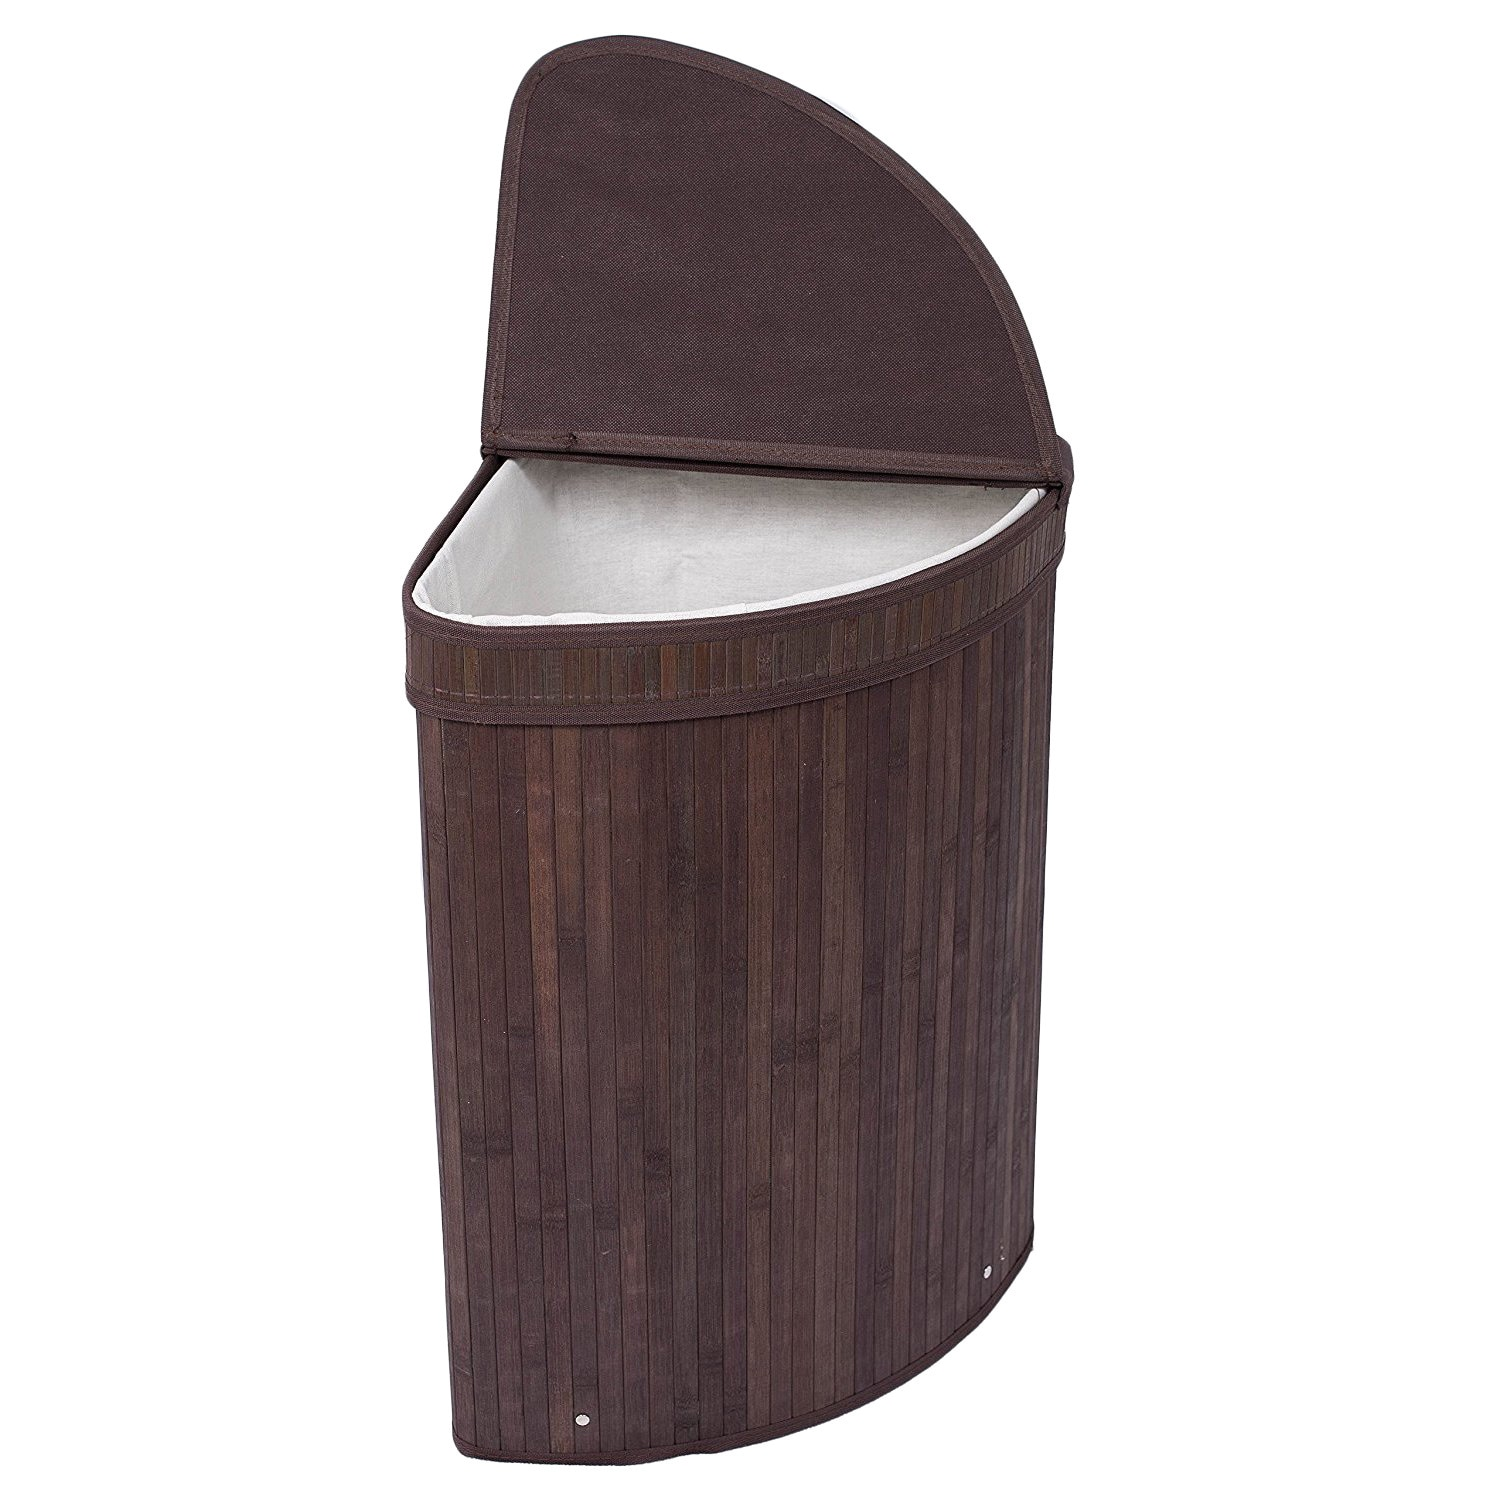 Shop birdrock home espresso finish bamboo cotton corner laundry hamper with lid and cloth liner free shipping on orders over 45 overstock com